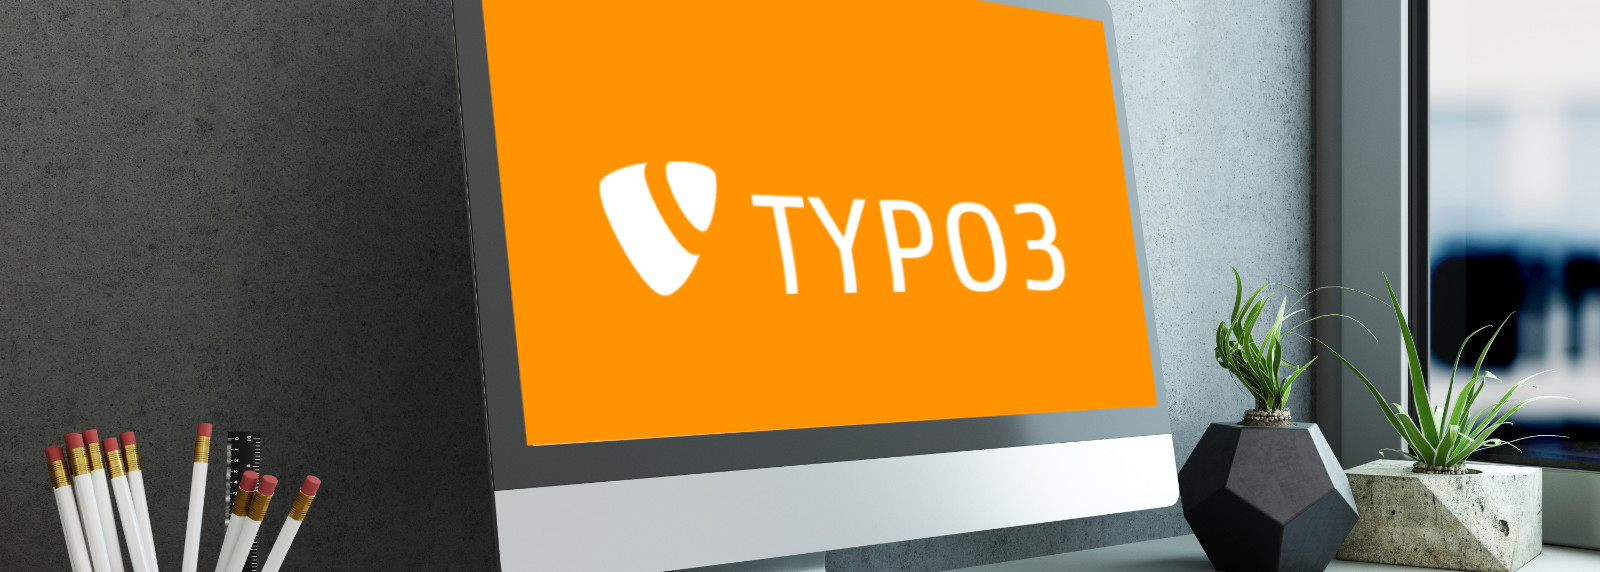 TYPO3 Version10